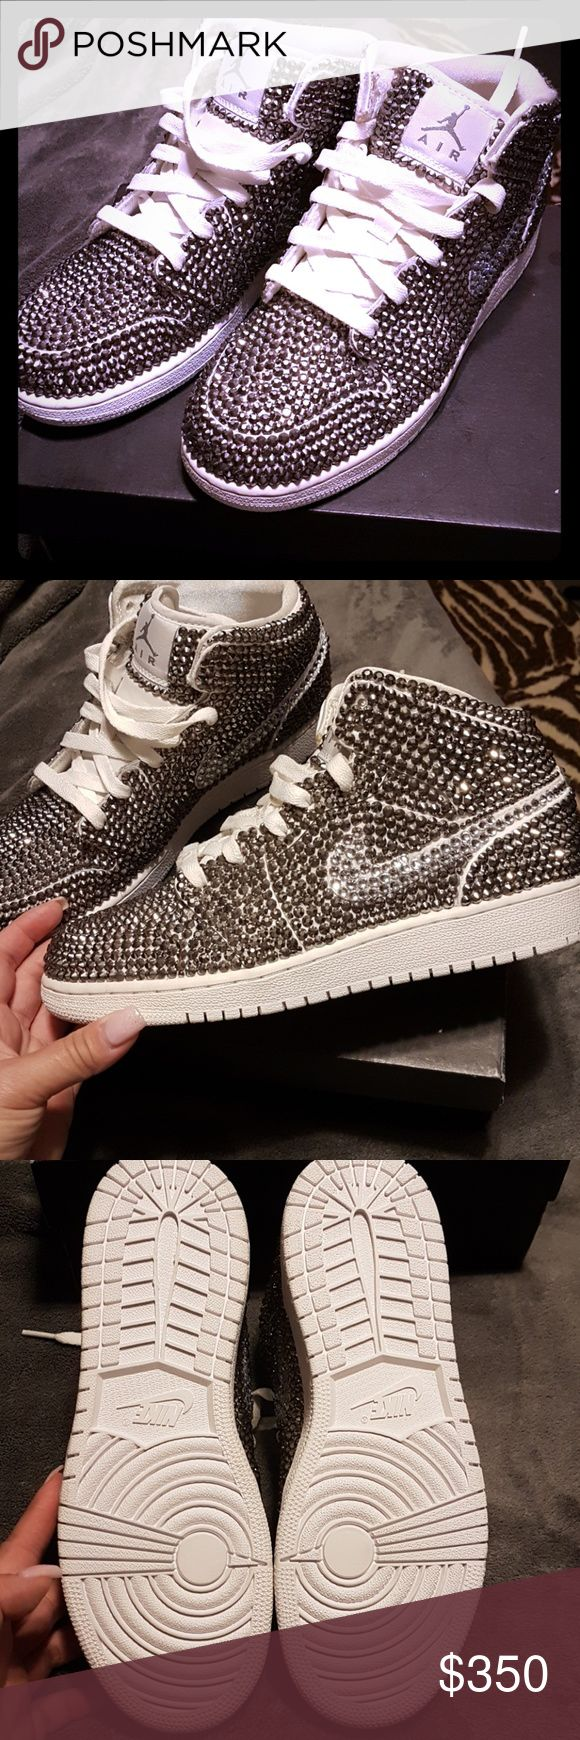 New Jordan Retro Crystal Shoes Selling a brand new pair of Jordans. They are all customized in crystals. One came off when taking a pic. Comes with new glue and a bag of crystals in case some fall off. Thought I would wear these but I never did. My loss your gain. Size 5Y. Jordan Shoes Sneakers